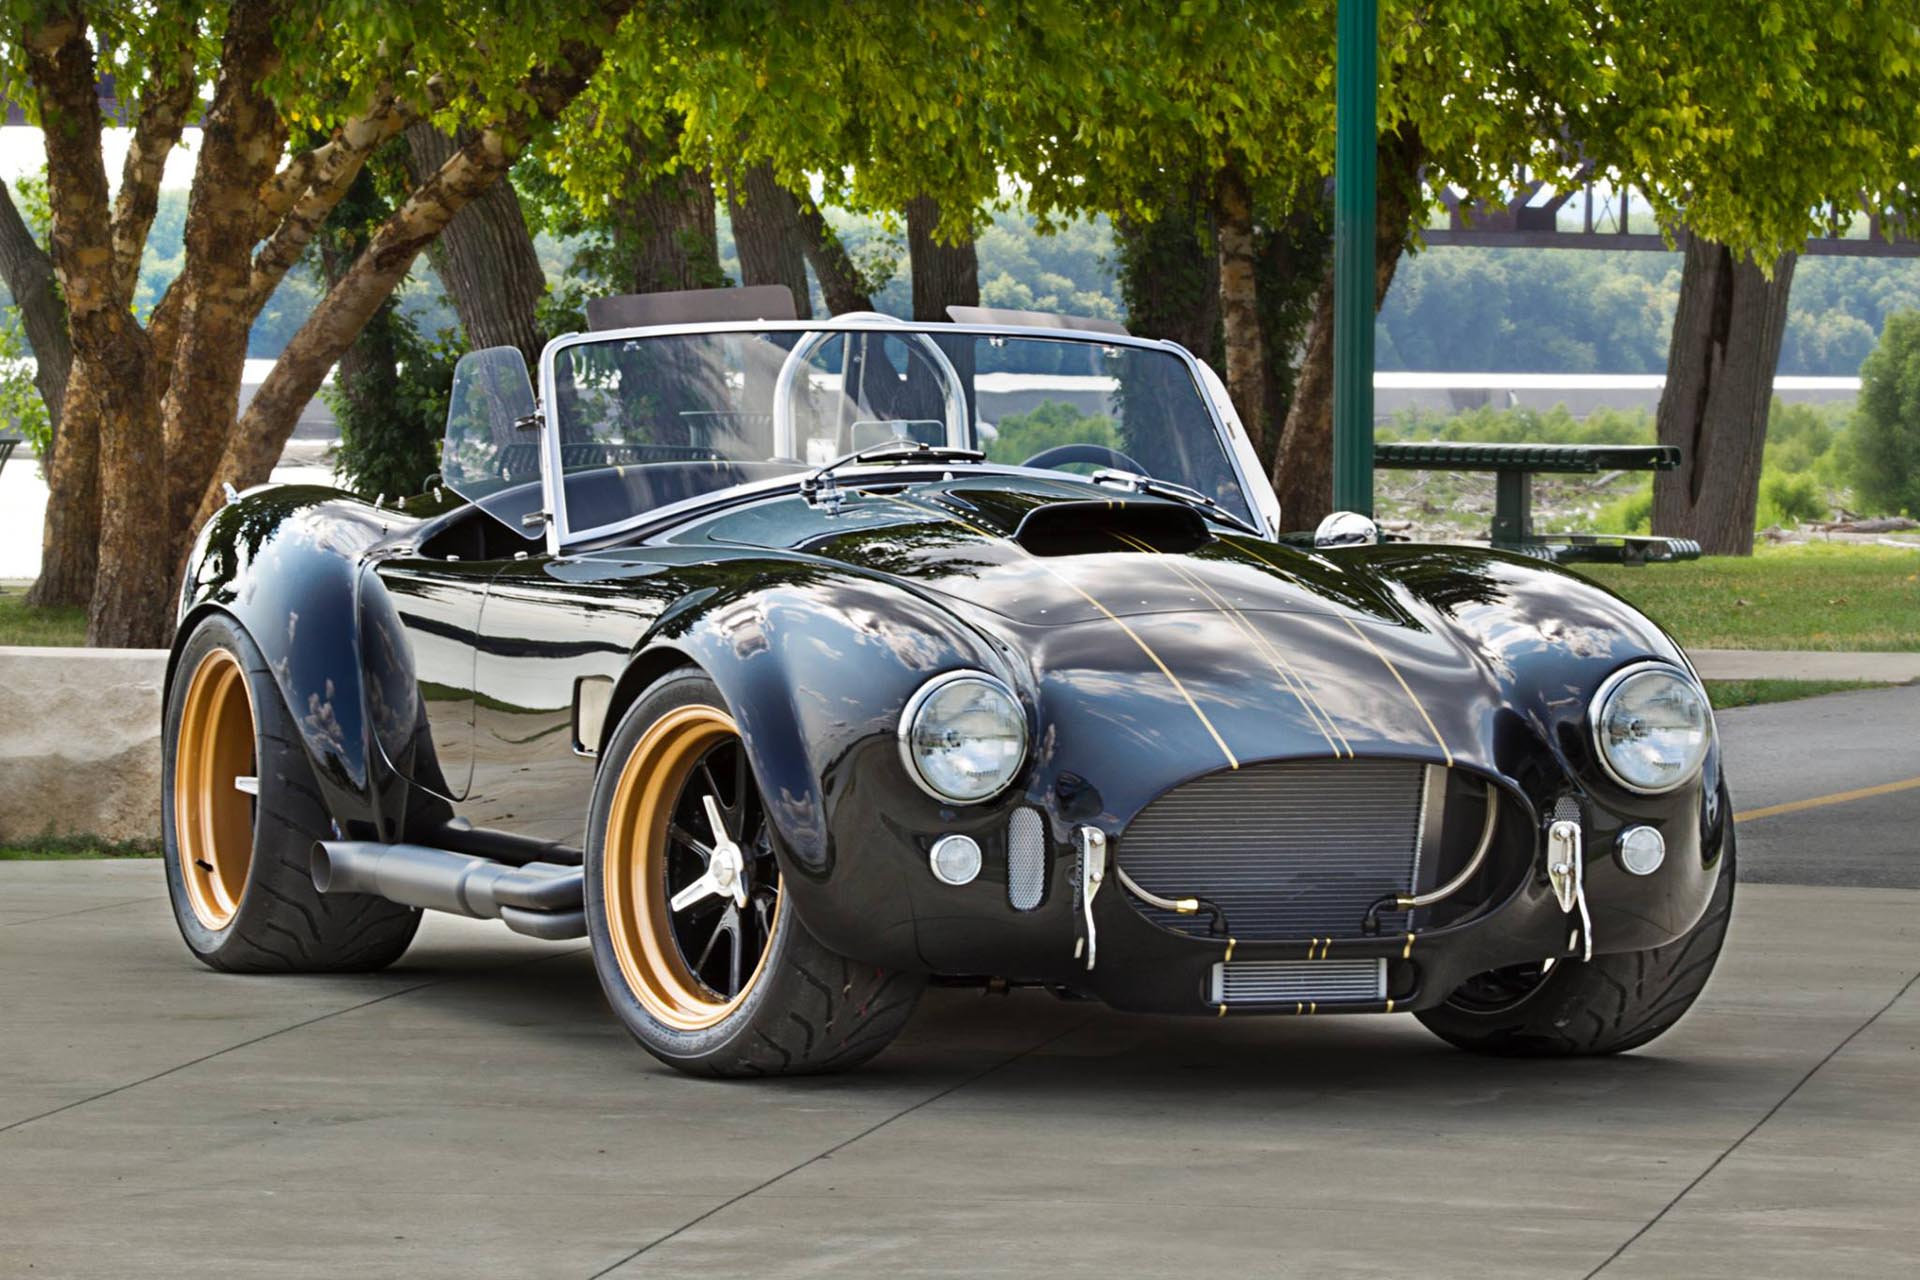 1965 Superformance Cobra MK III Convertible